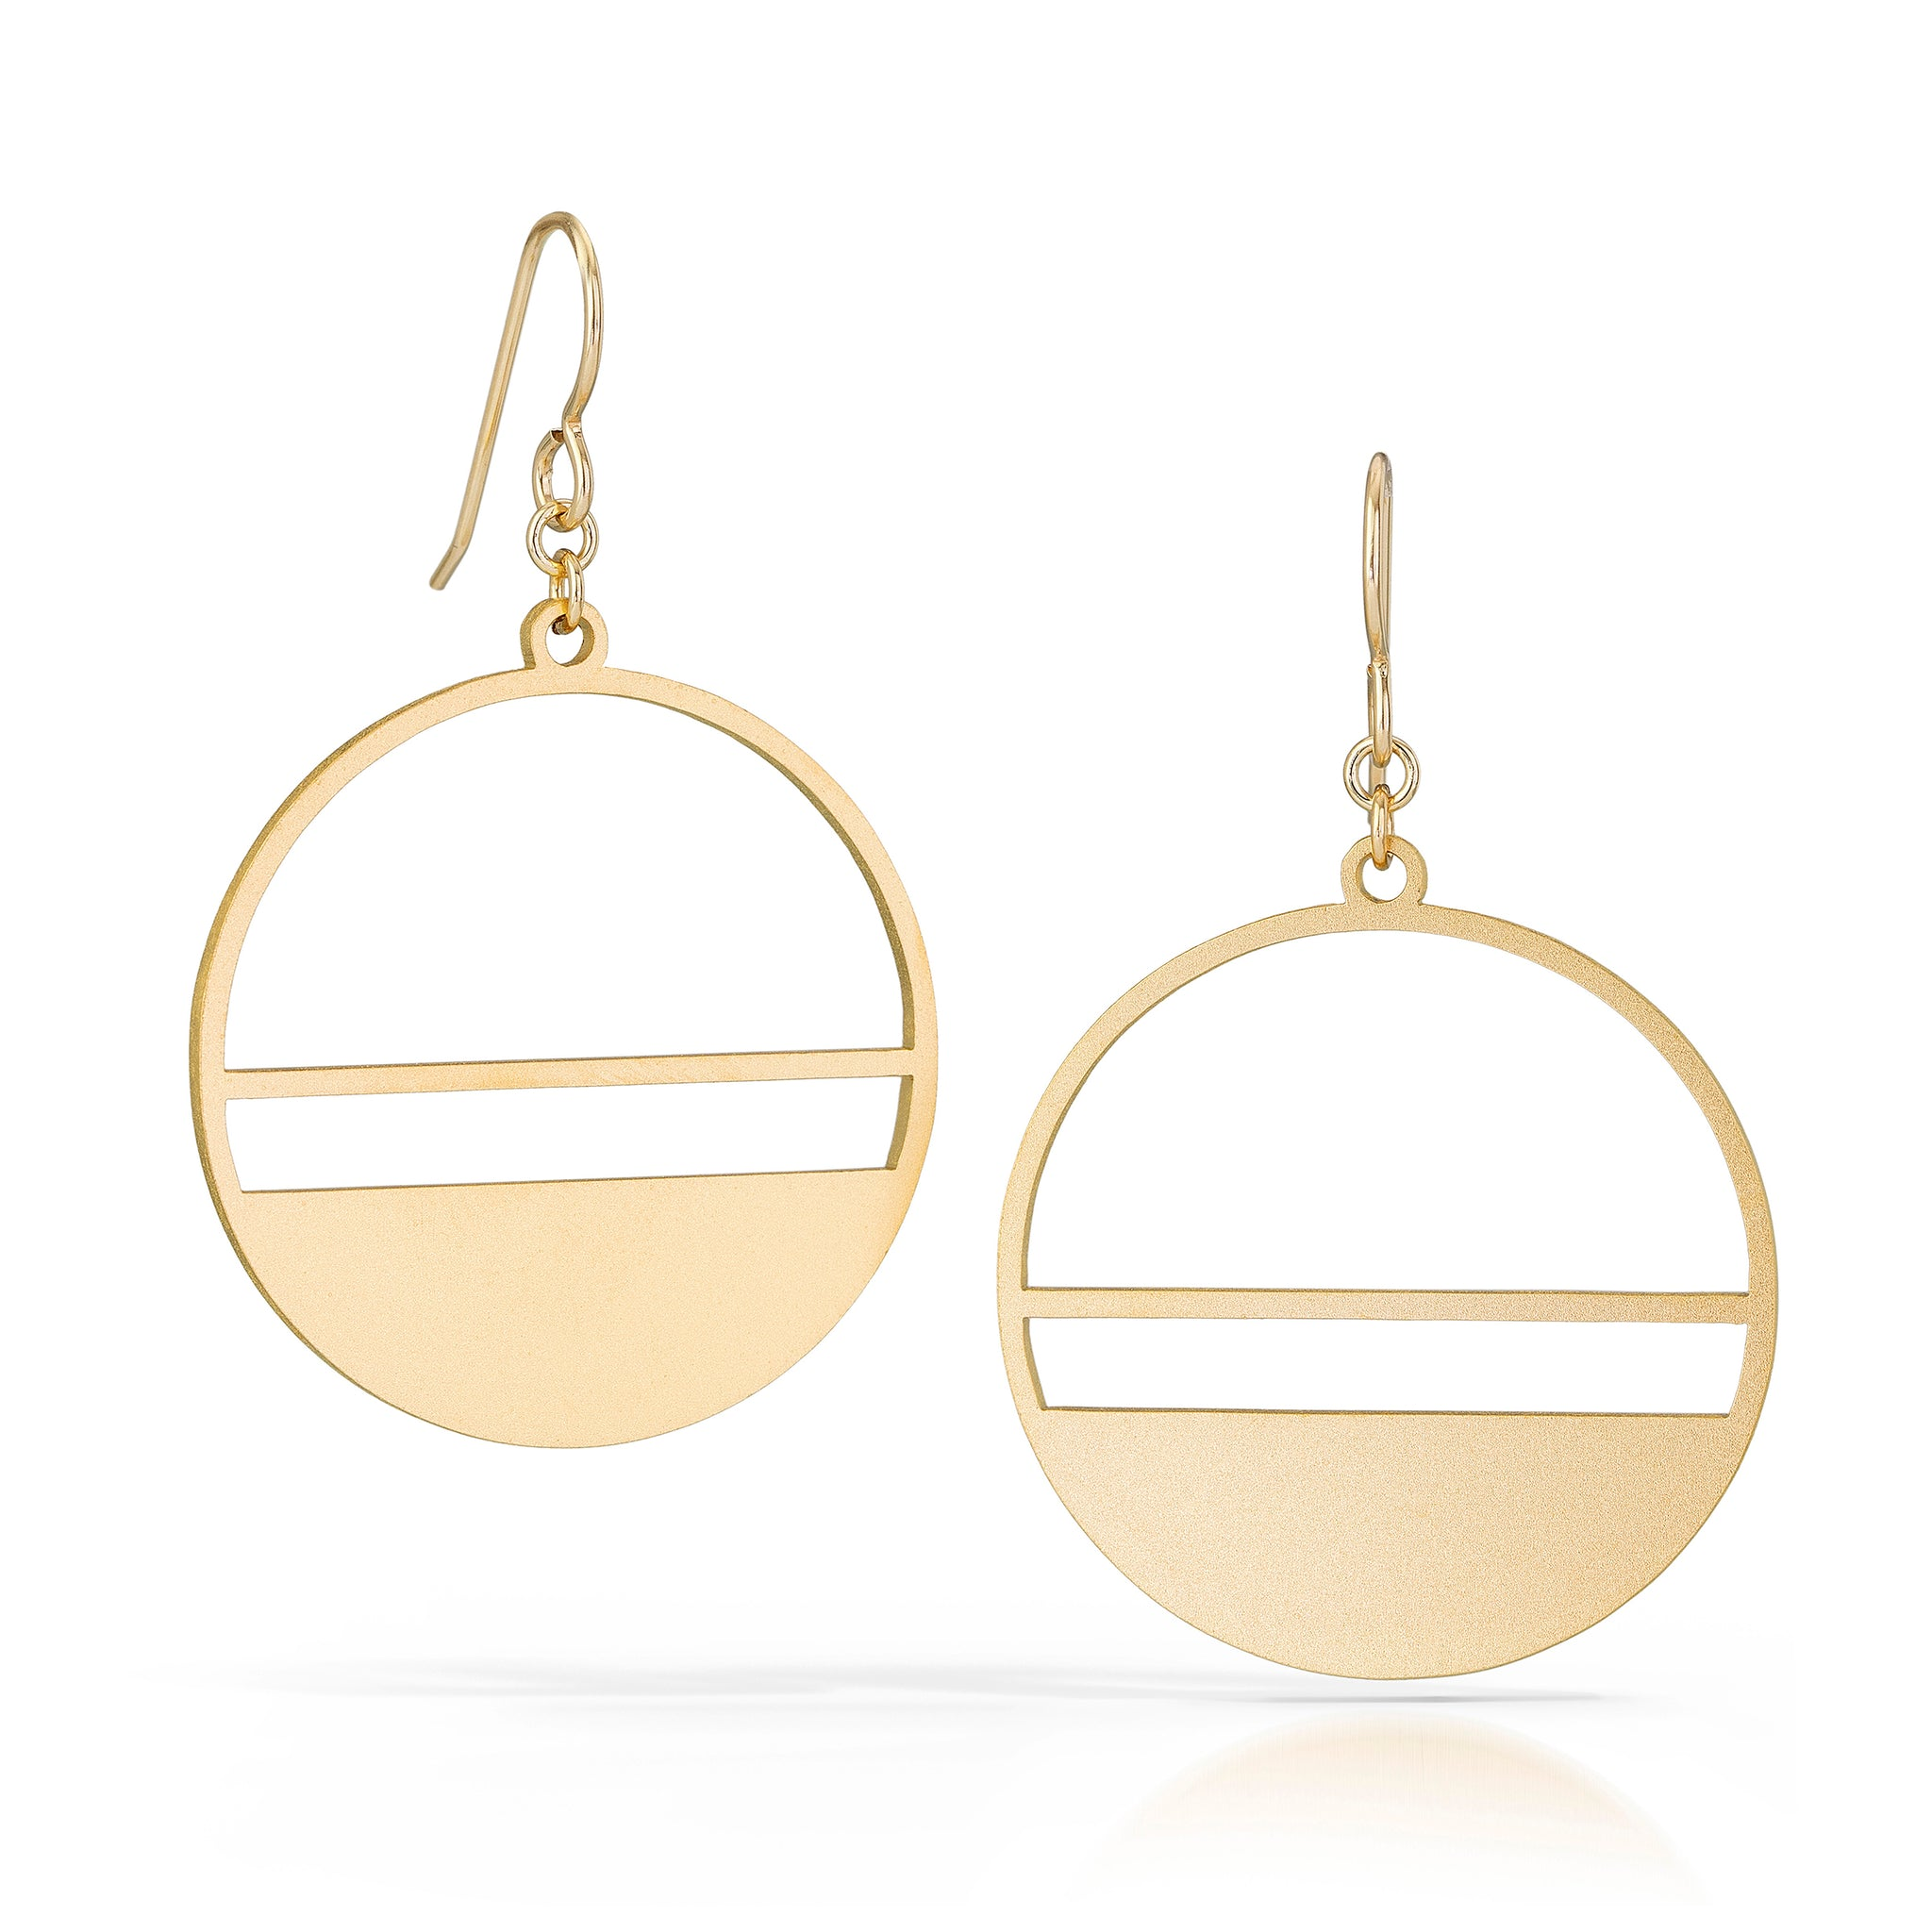 horizon earrings, 18k gold-plated